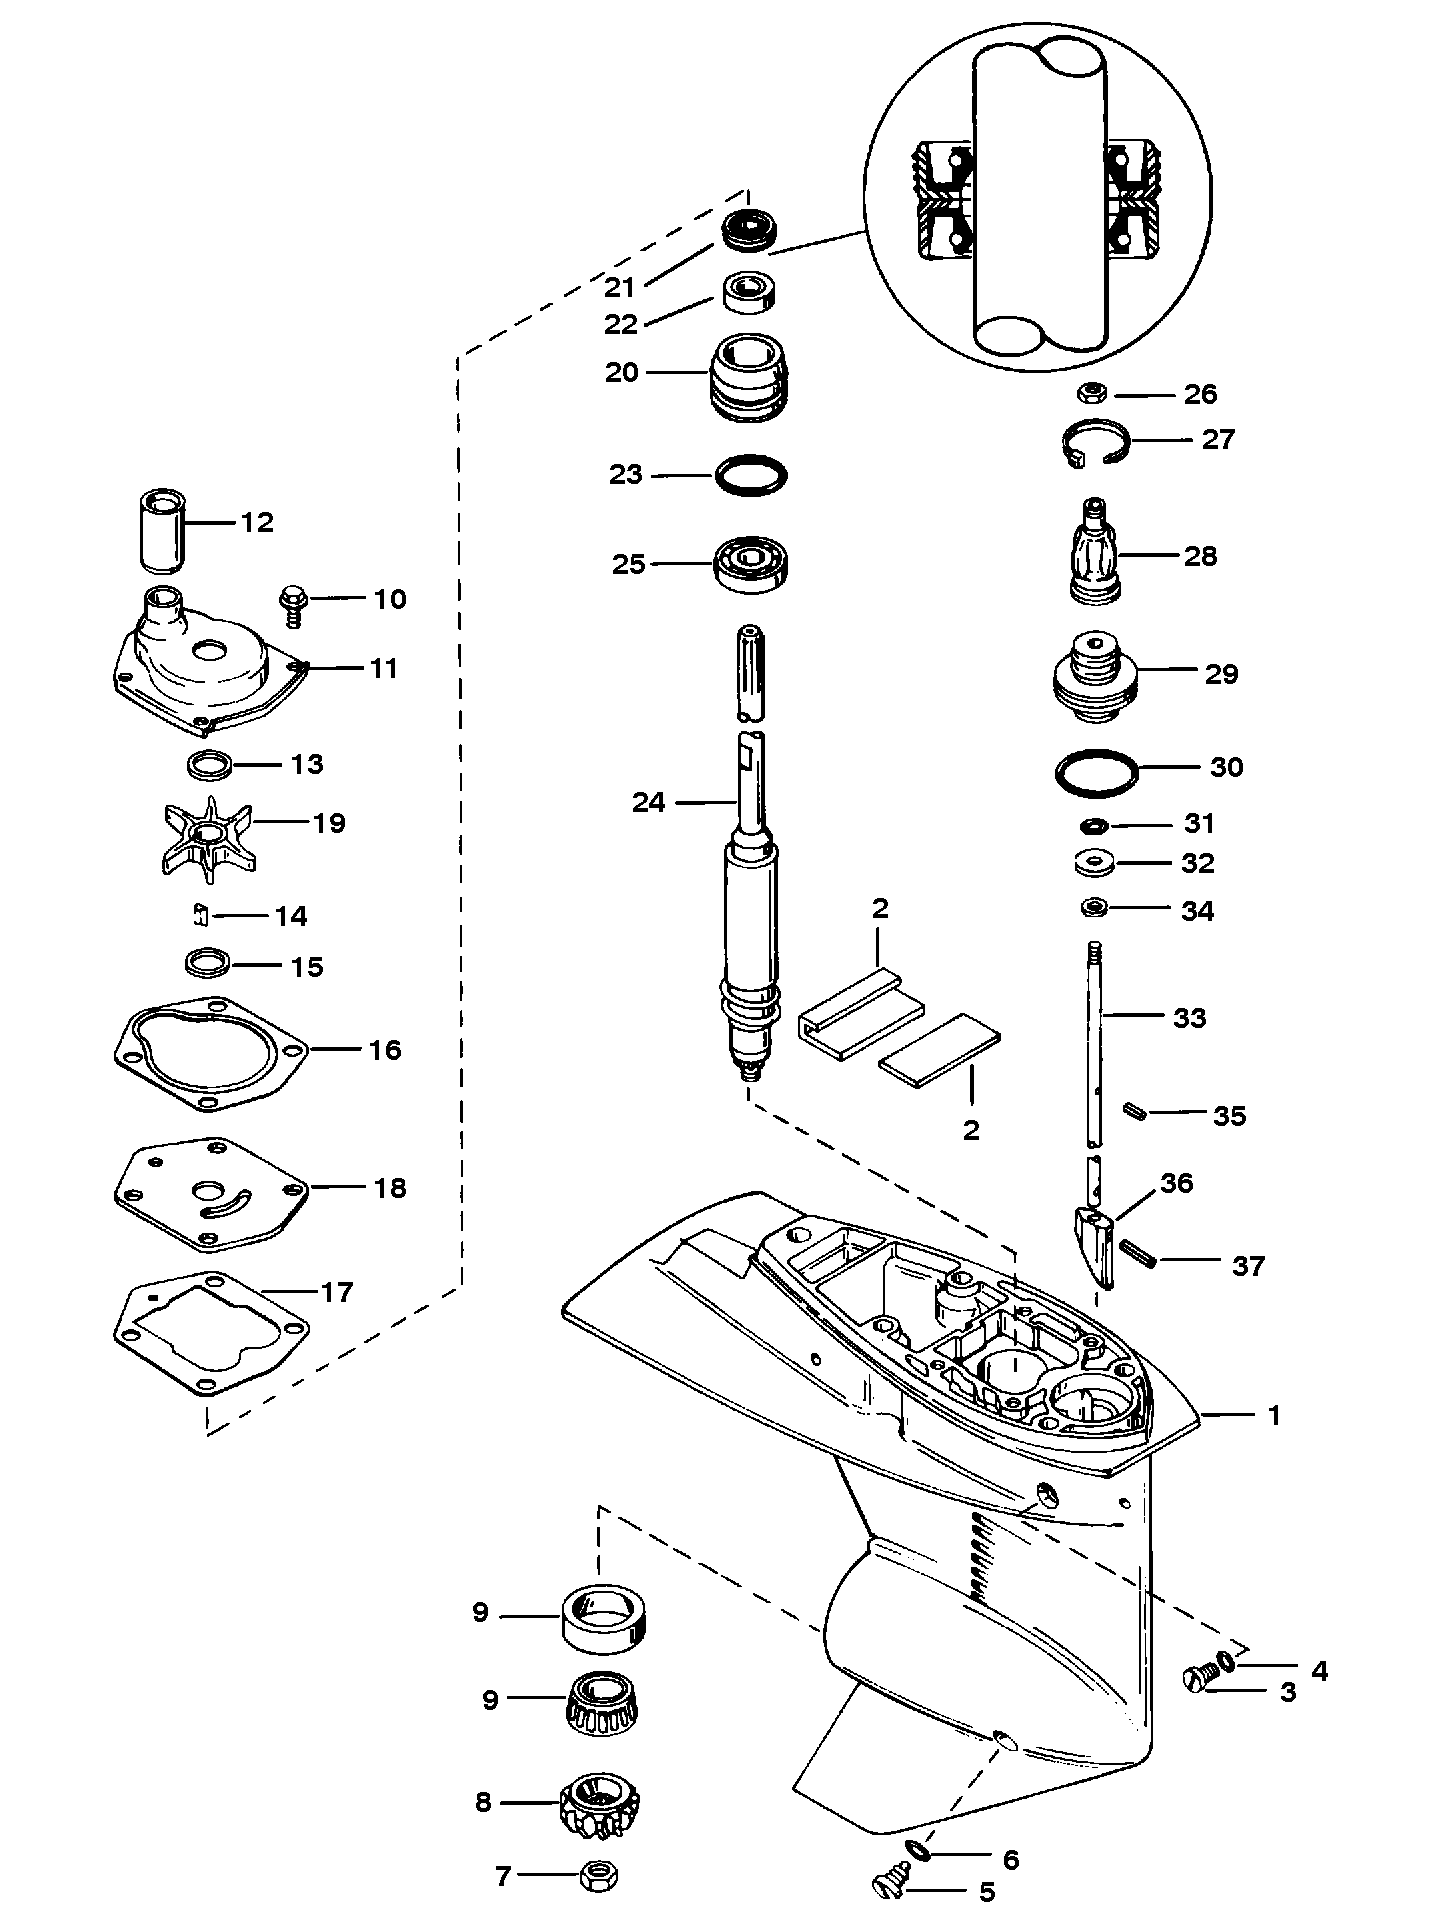 mercury outboard parts online electron transport chain diagram with explanation force 50 h p 1996 0e138600 thru 0e202999